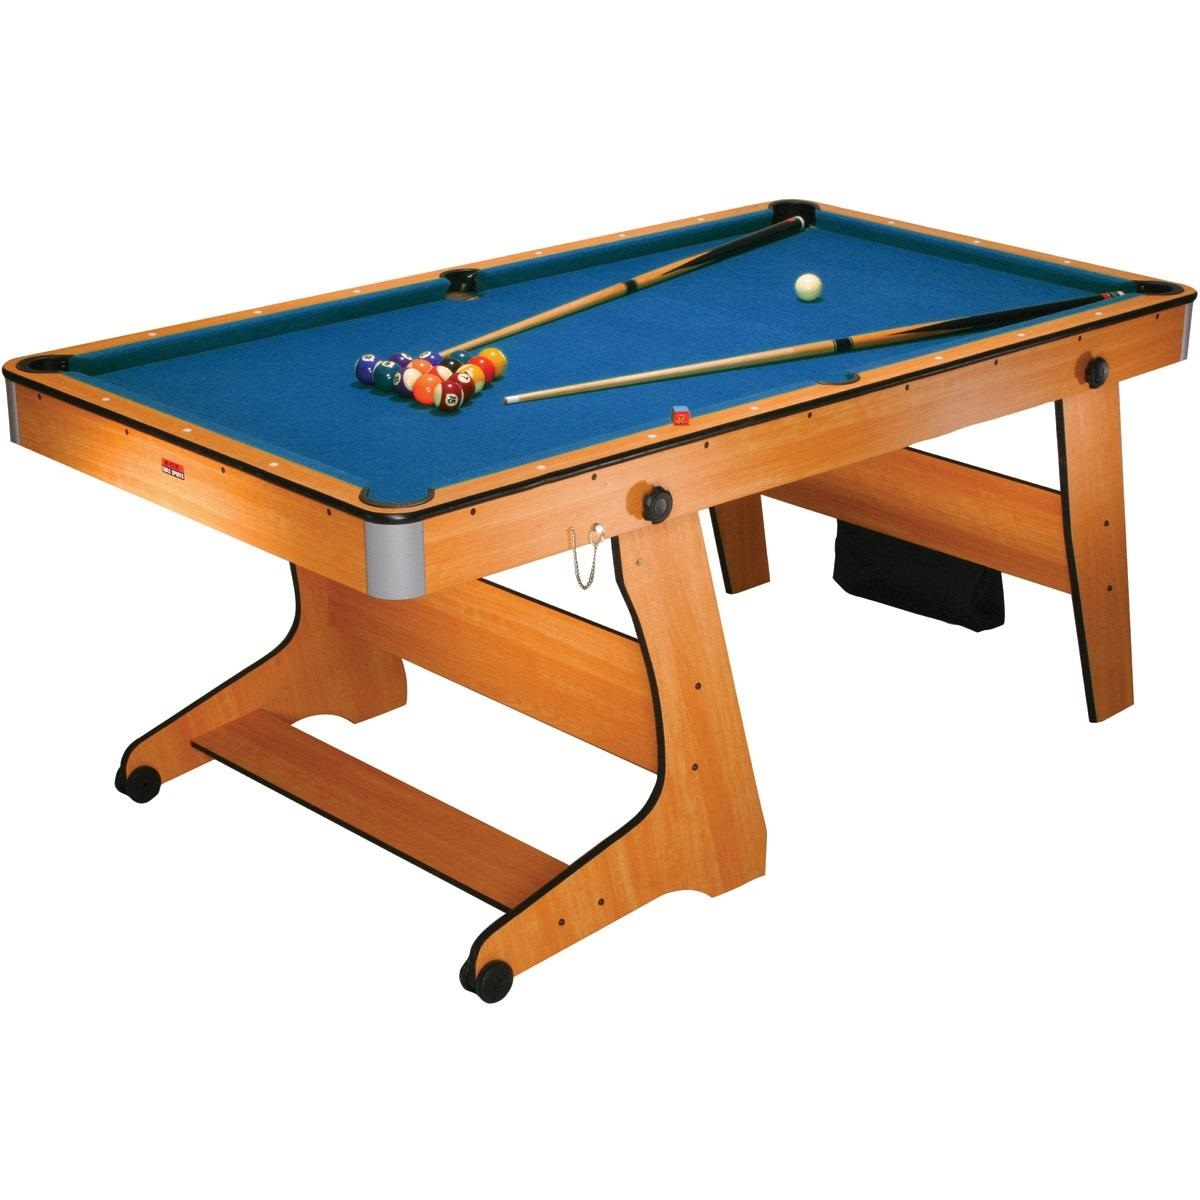 Bce 6ft vertical folding home pool table fp 6tt liberty games - Pool table house ...